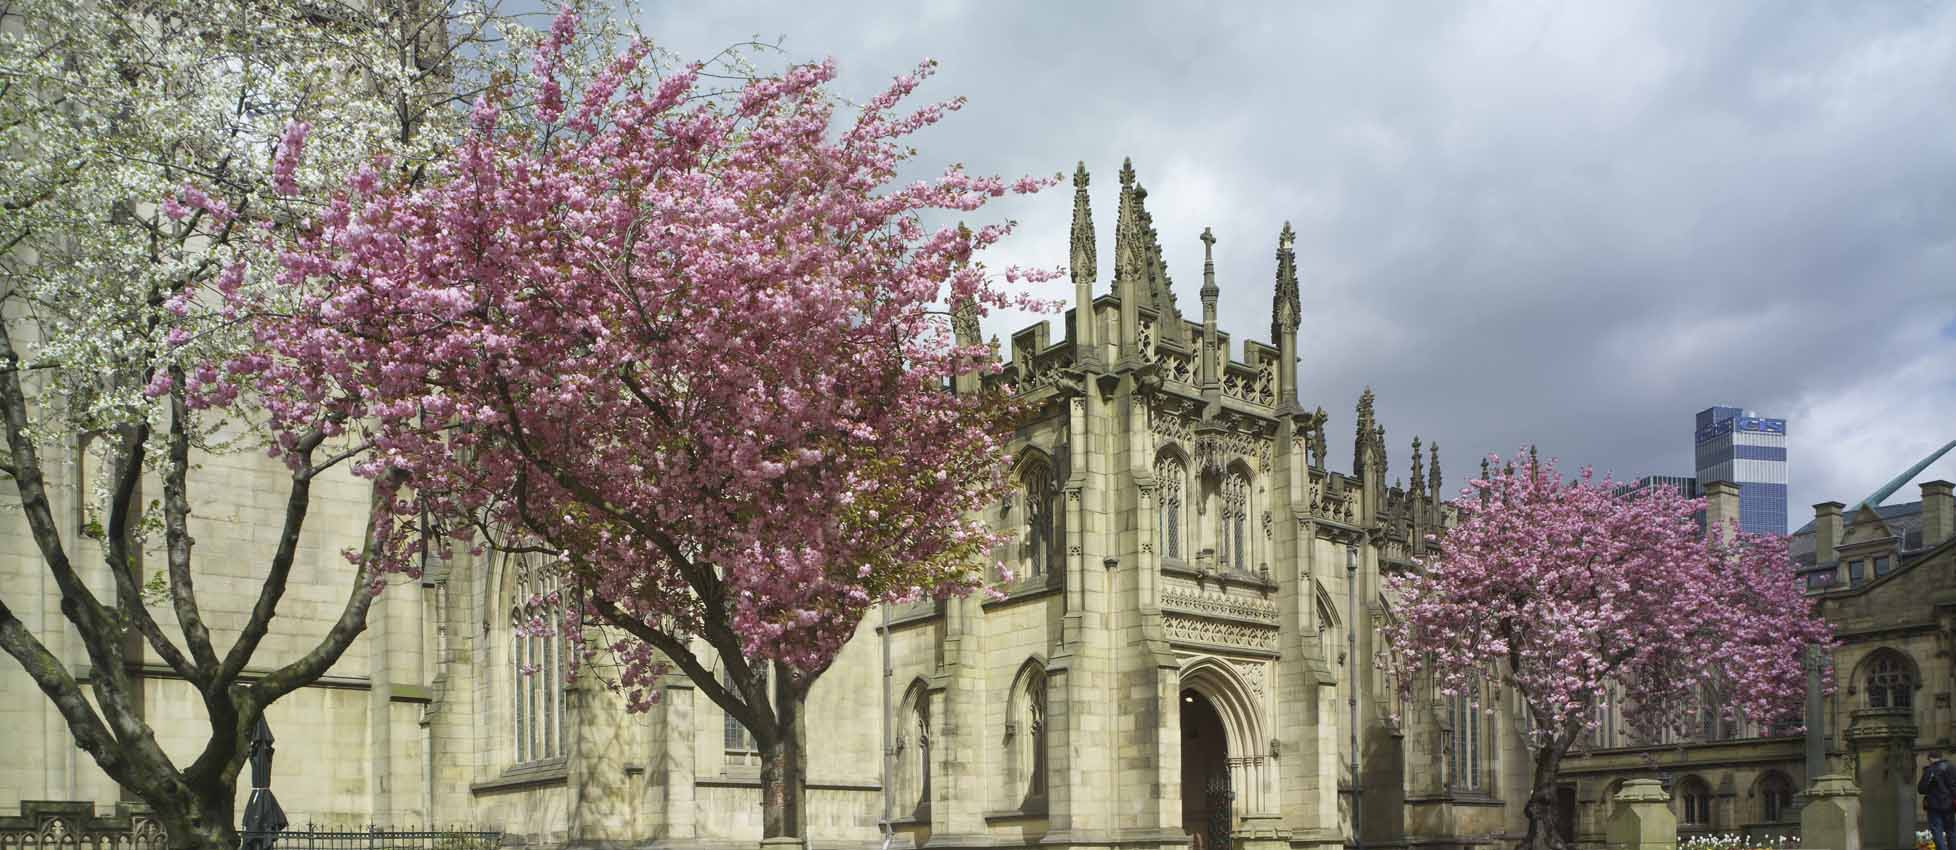 Manchester Cathedral awarded £225,000 from the First World War centenary cathedral repairs fund